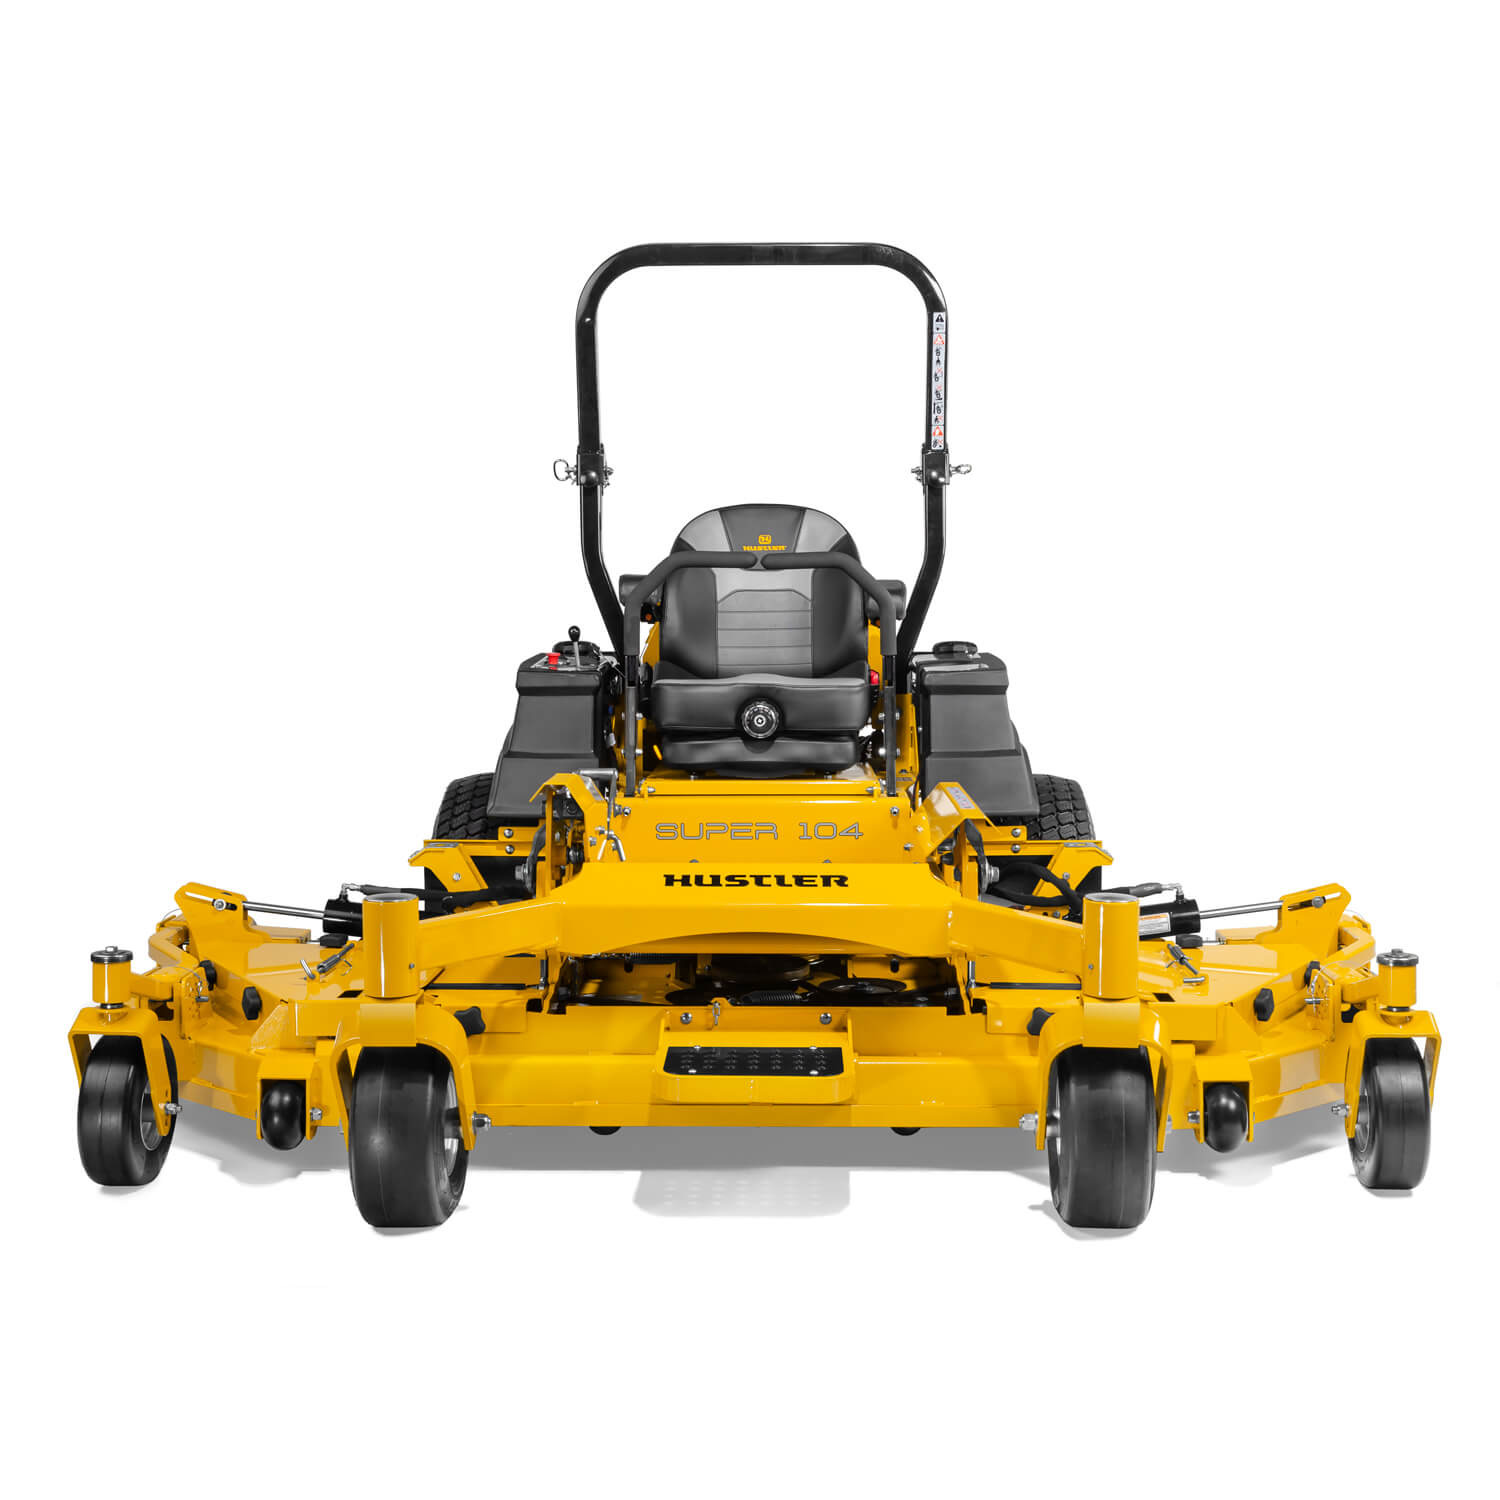 Image of the front of a yellow zero-turn mower with wing decks attached to the main deck